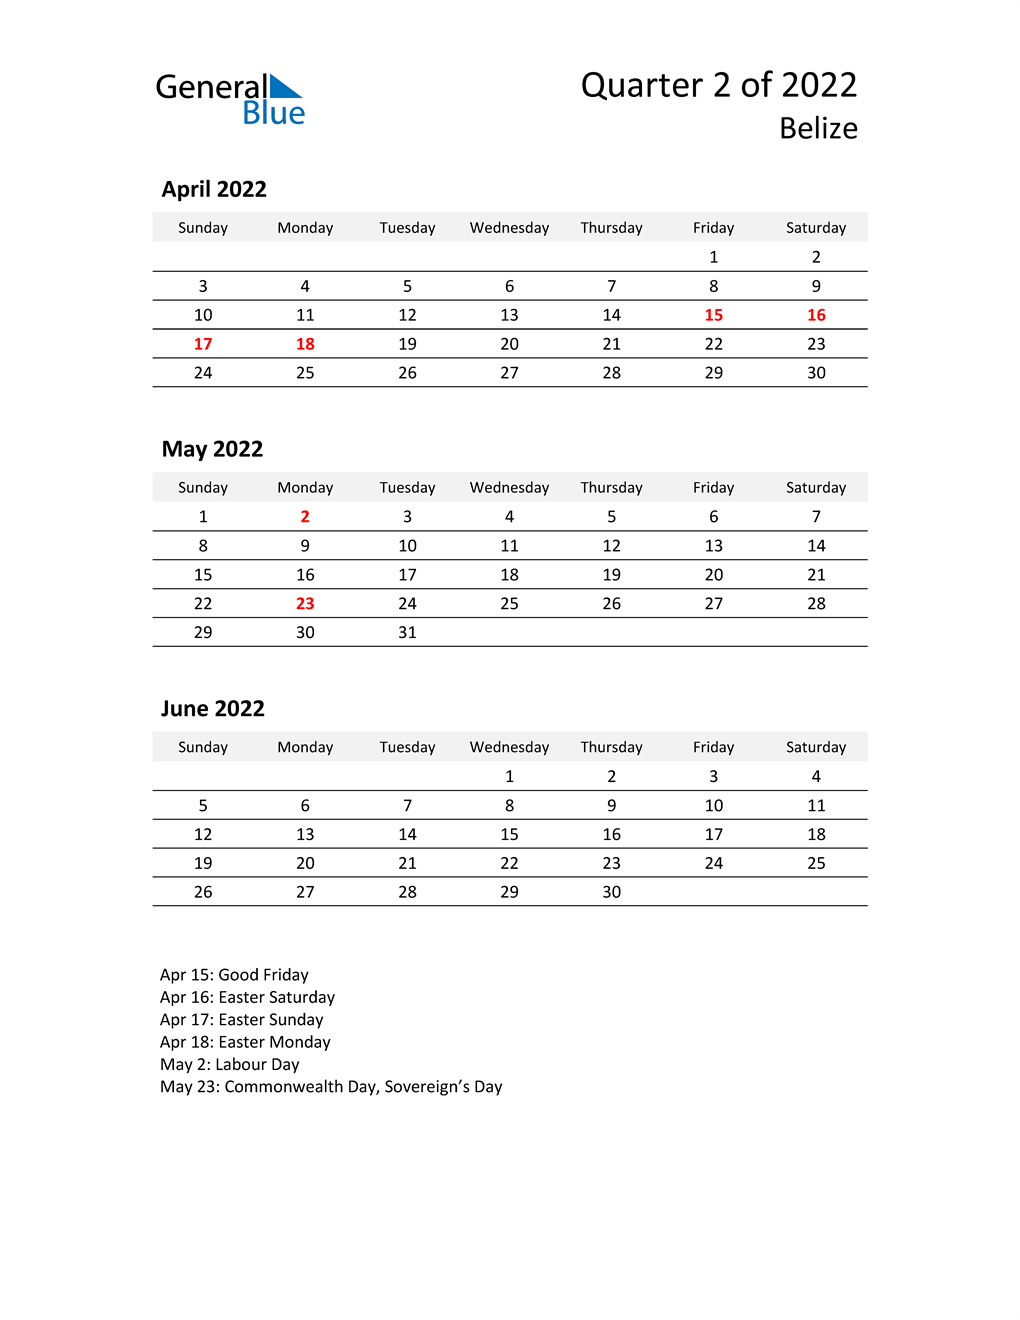 2022 Three-Month Calendar for Belize